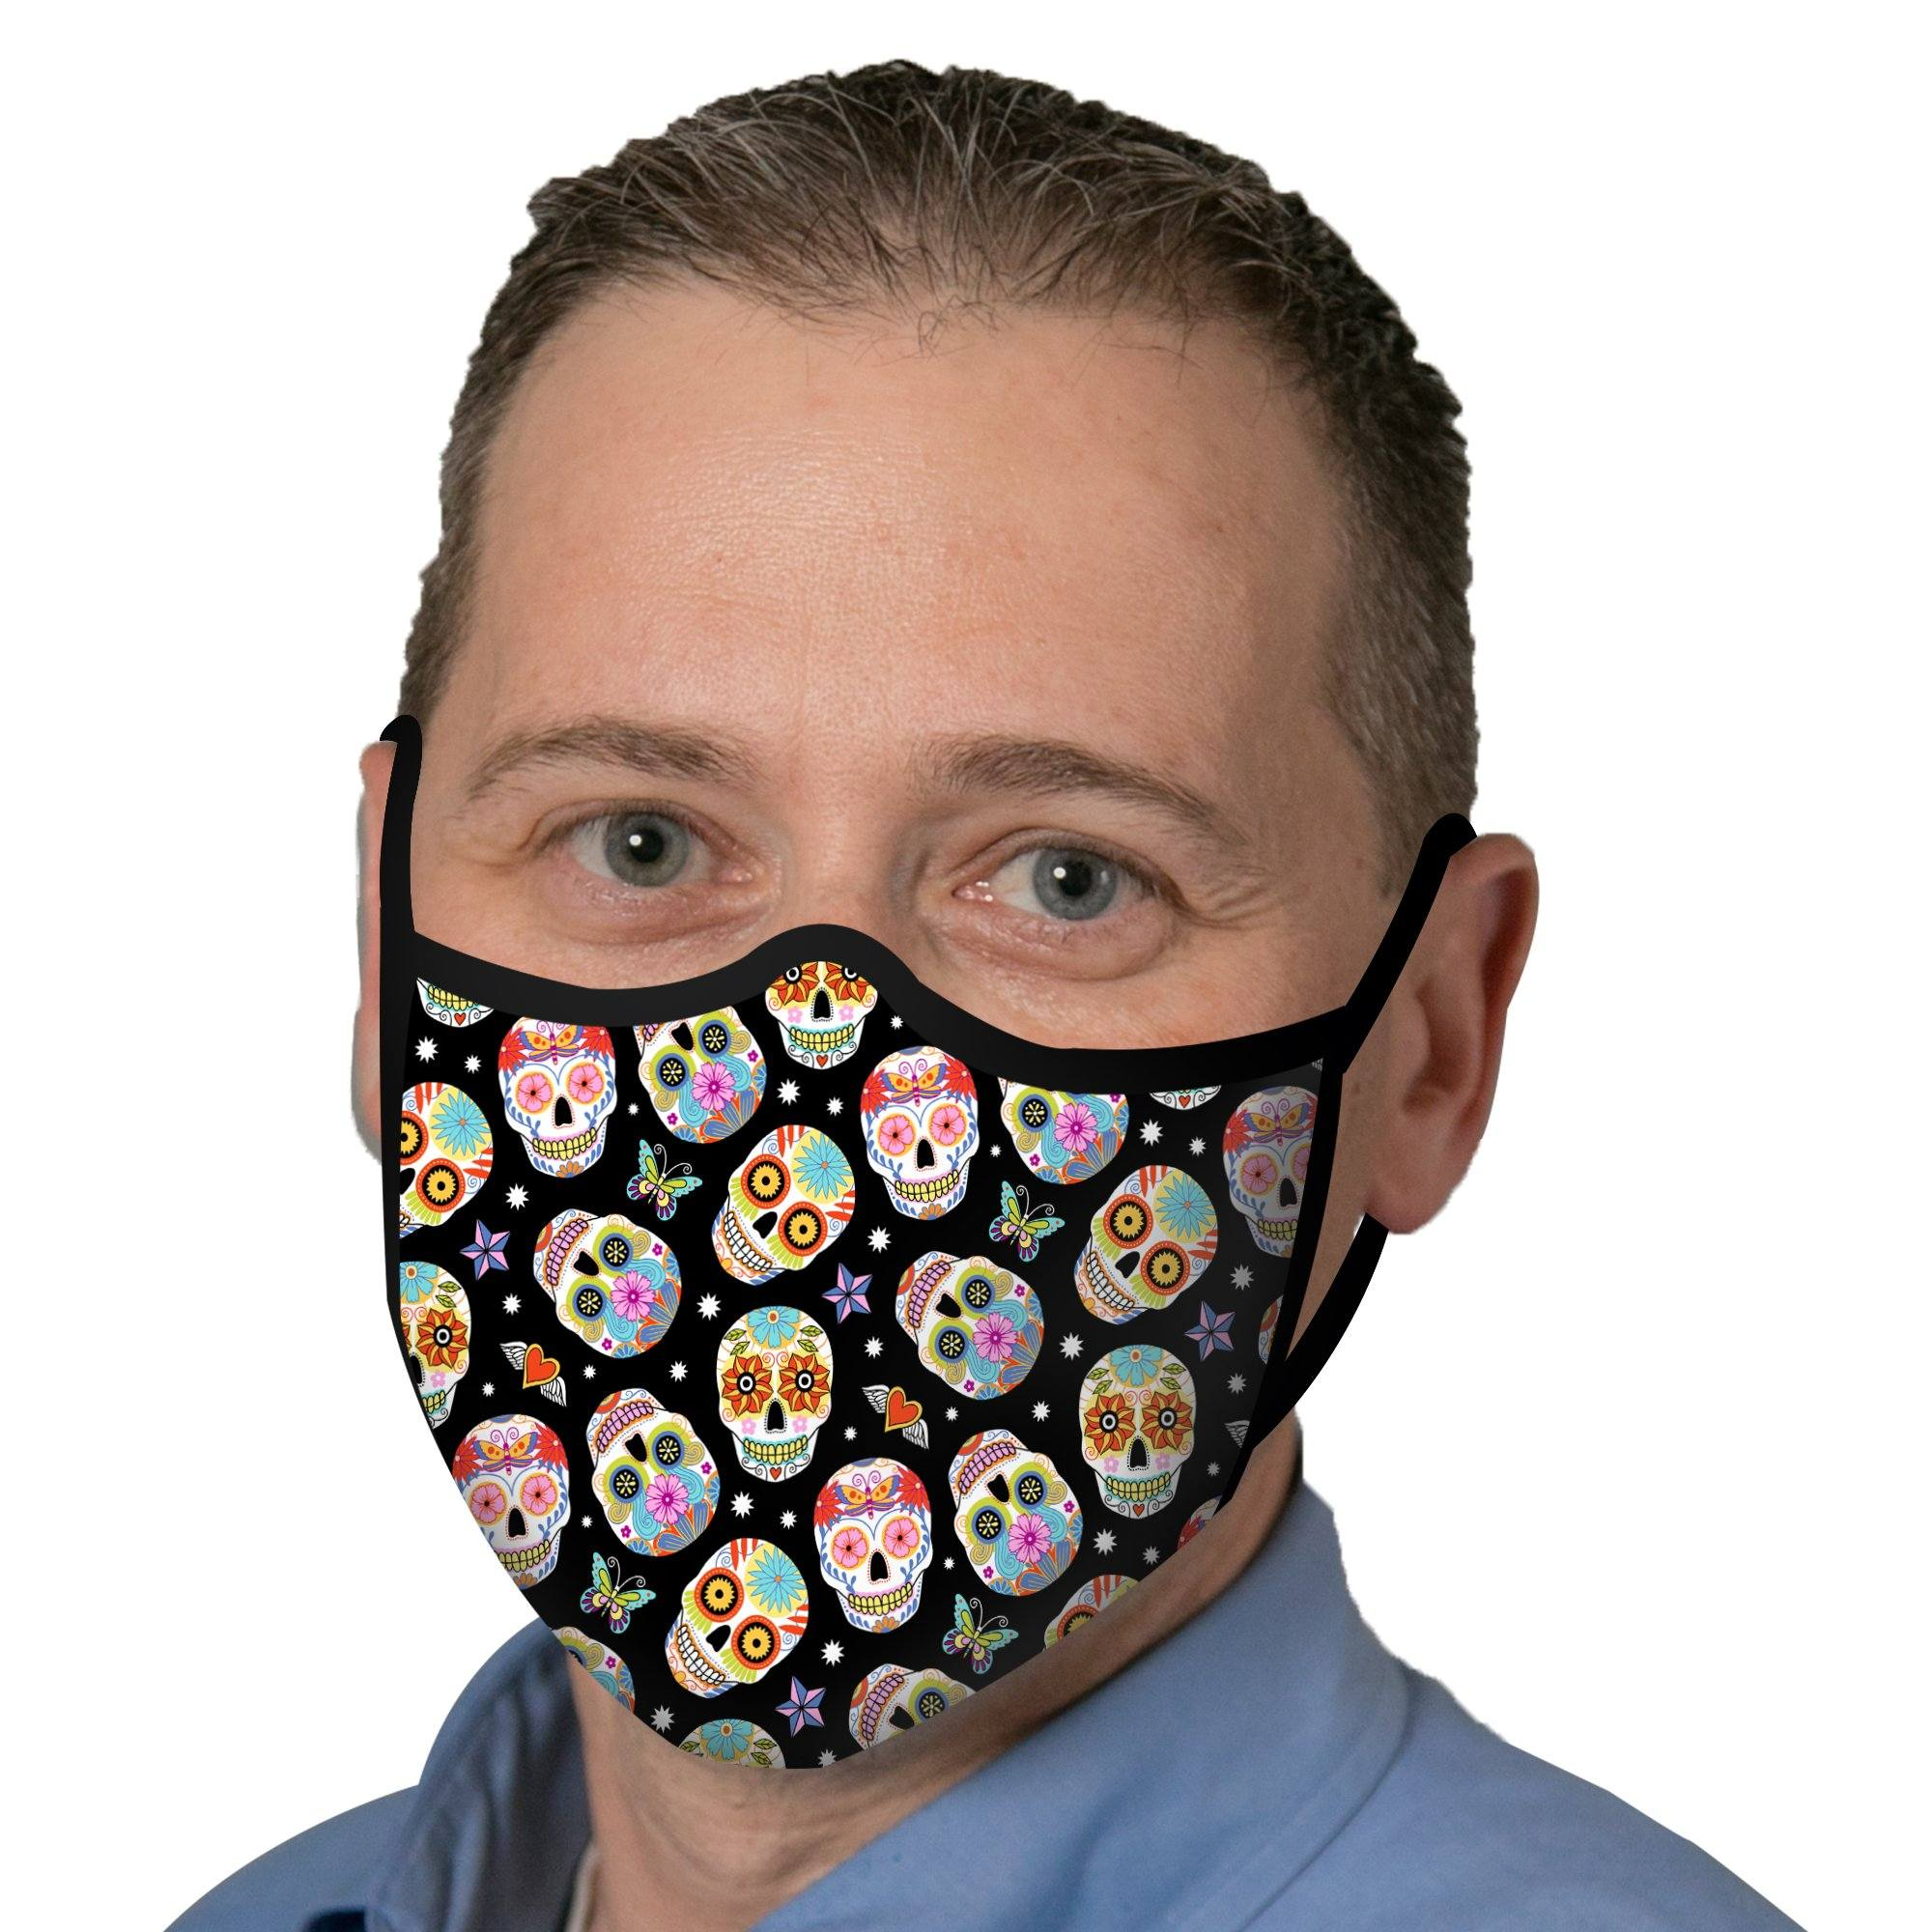 RainCaper Sugar Skulls Print Reusable Fabric Face Mask